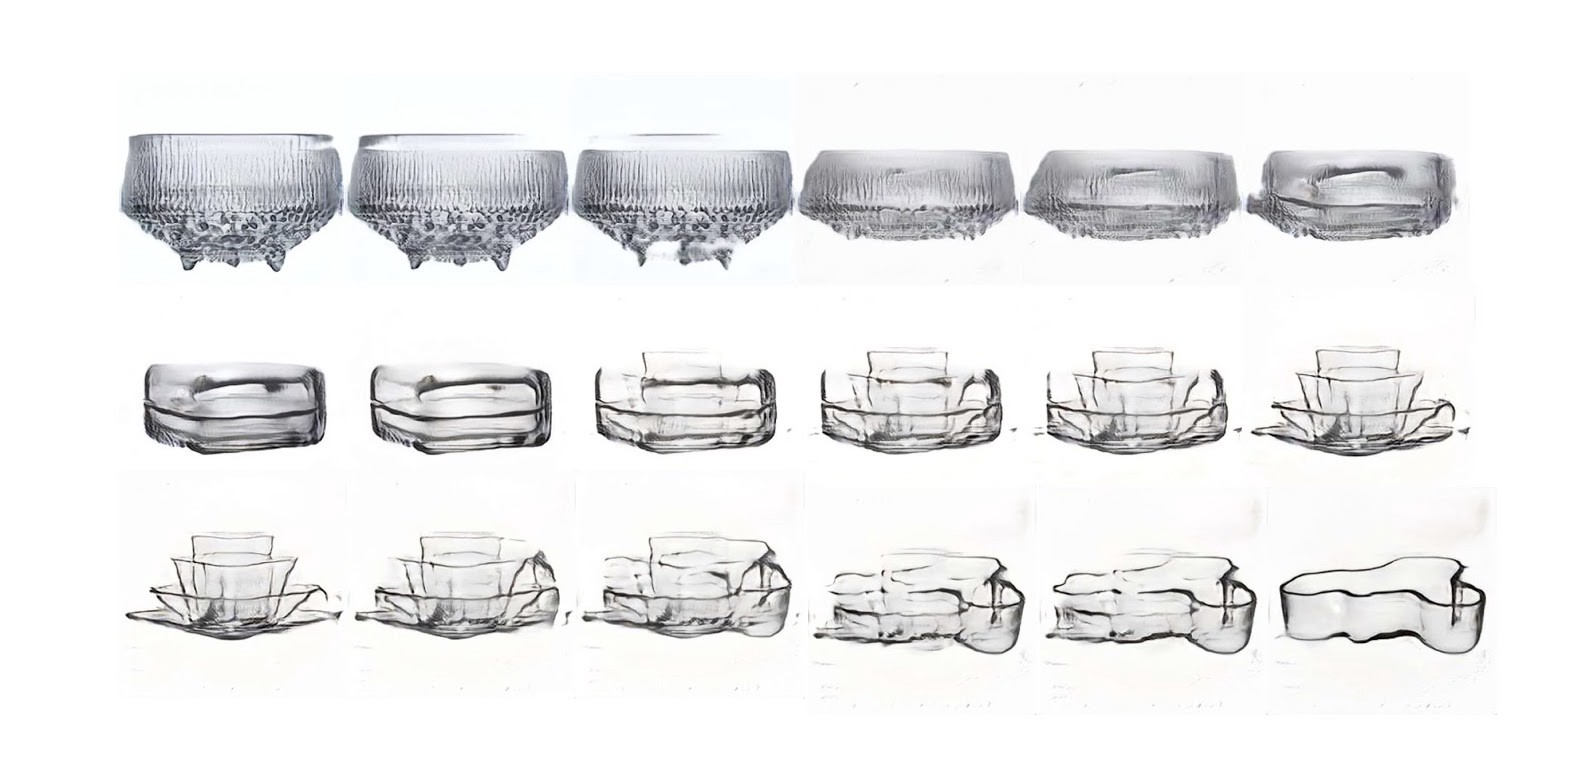 A series of images of one glass bowl gradually taking shape into a differently designed glass bowl